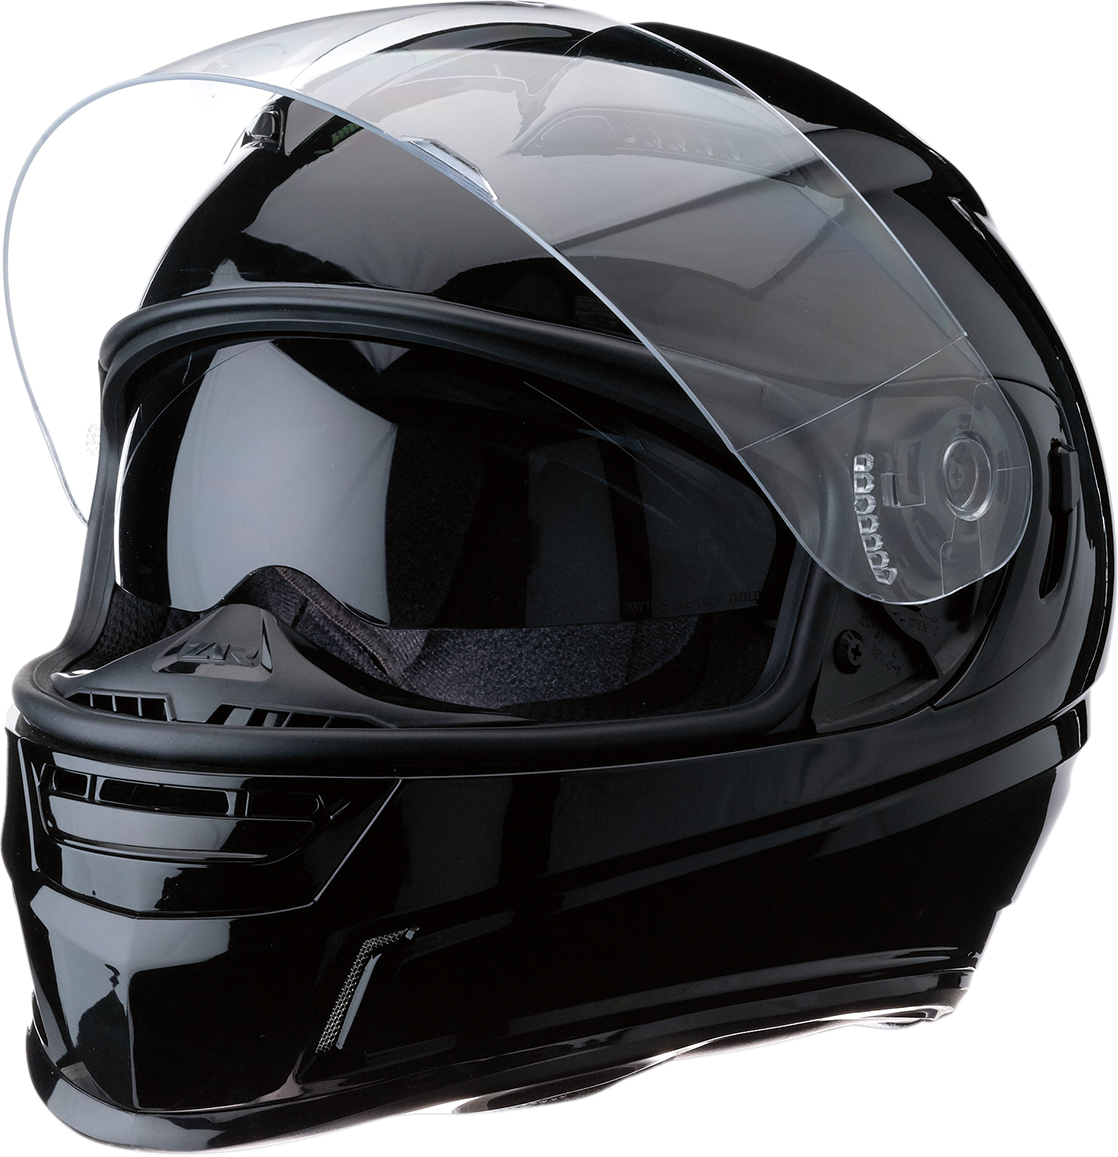 Z1R Jackal Unisex Motorcycle Riding Street Racing Full Face DOT Helmet